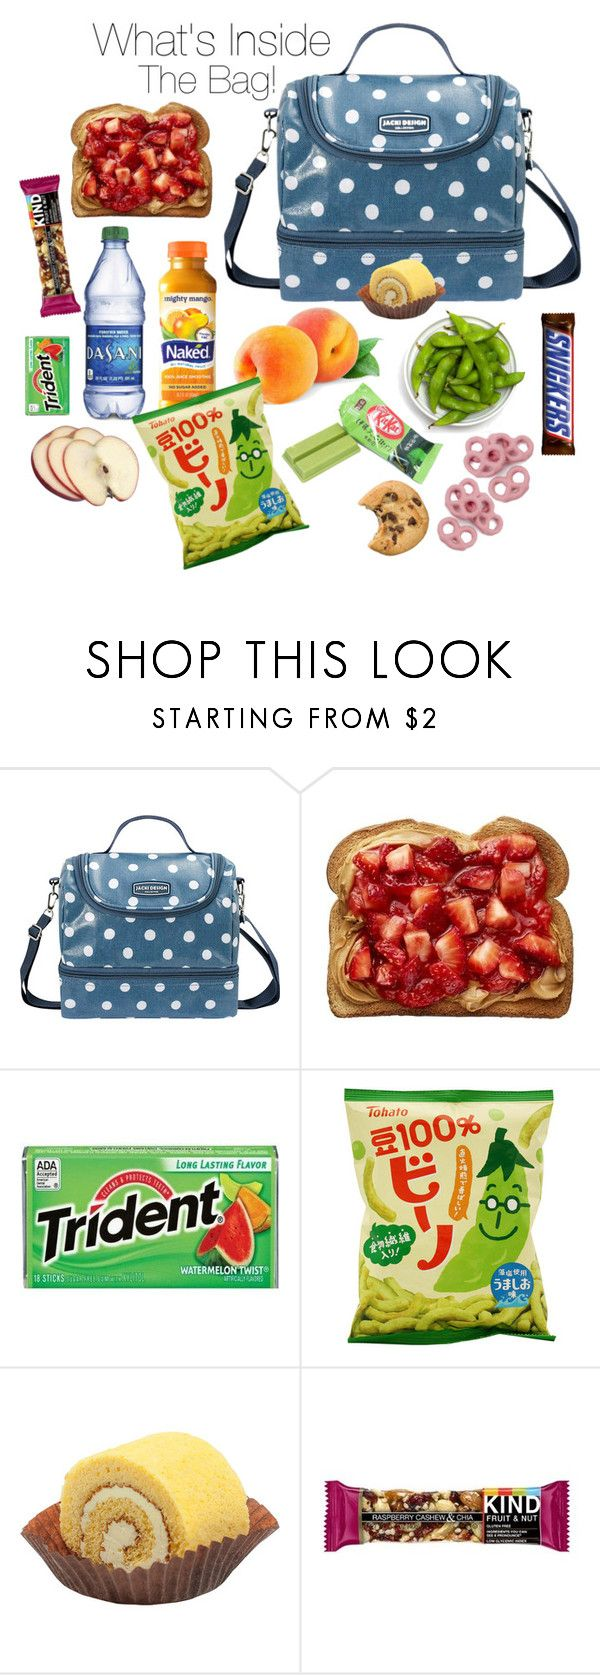 """""""022437317PM"""" by cheesyxshirleyxo ❤ liked on Polyvore featuring Jacki Design, lunchbag and whatsinsidethebag"""